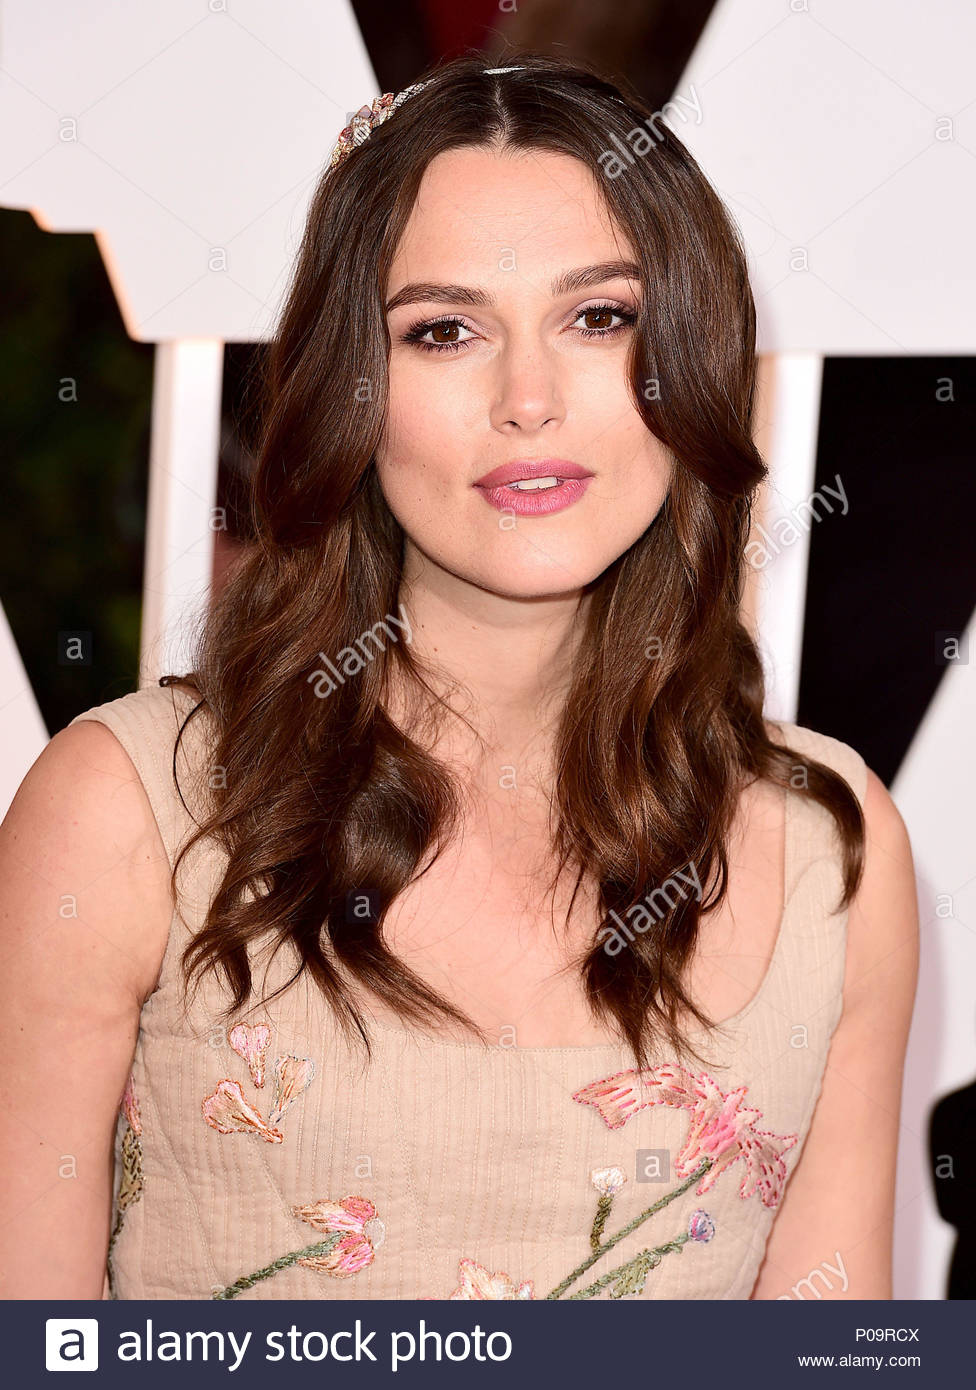 File photo dated 22/02/15 of Keira Knightley who has received a OBE in the Queen's Birthday Honours List. - Stock Image